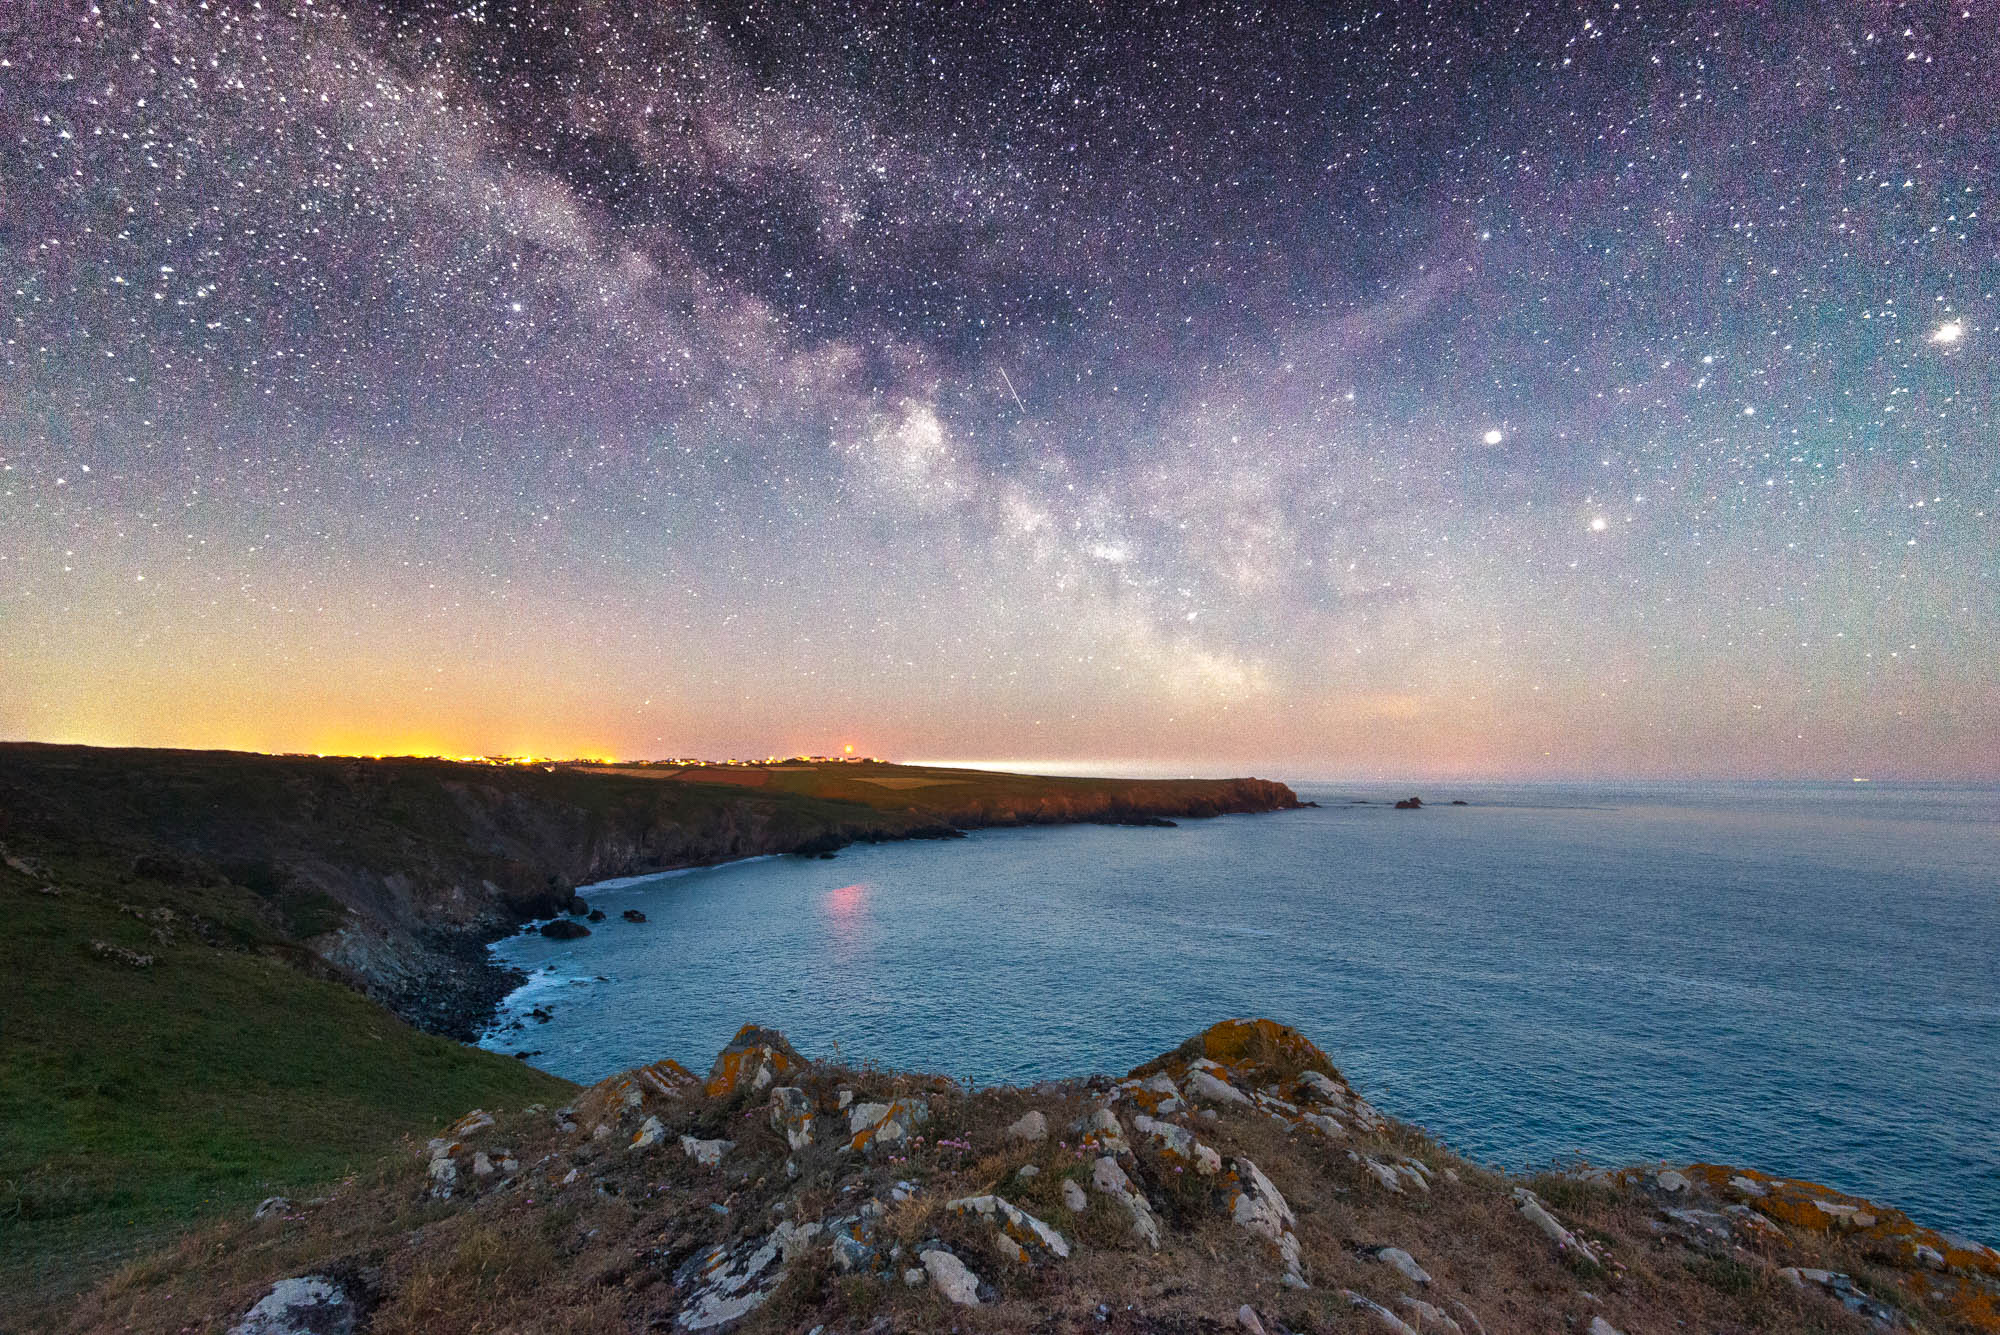 The Milky Way at Kyance Cove in Cornwall, UK